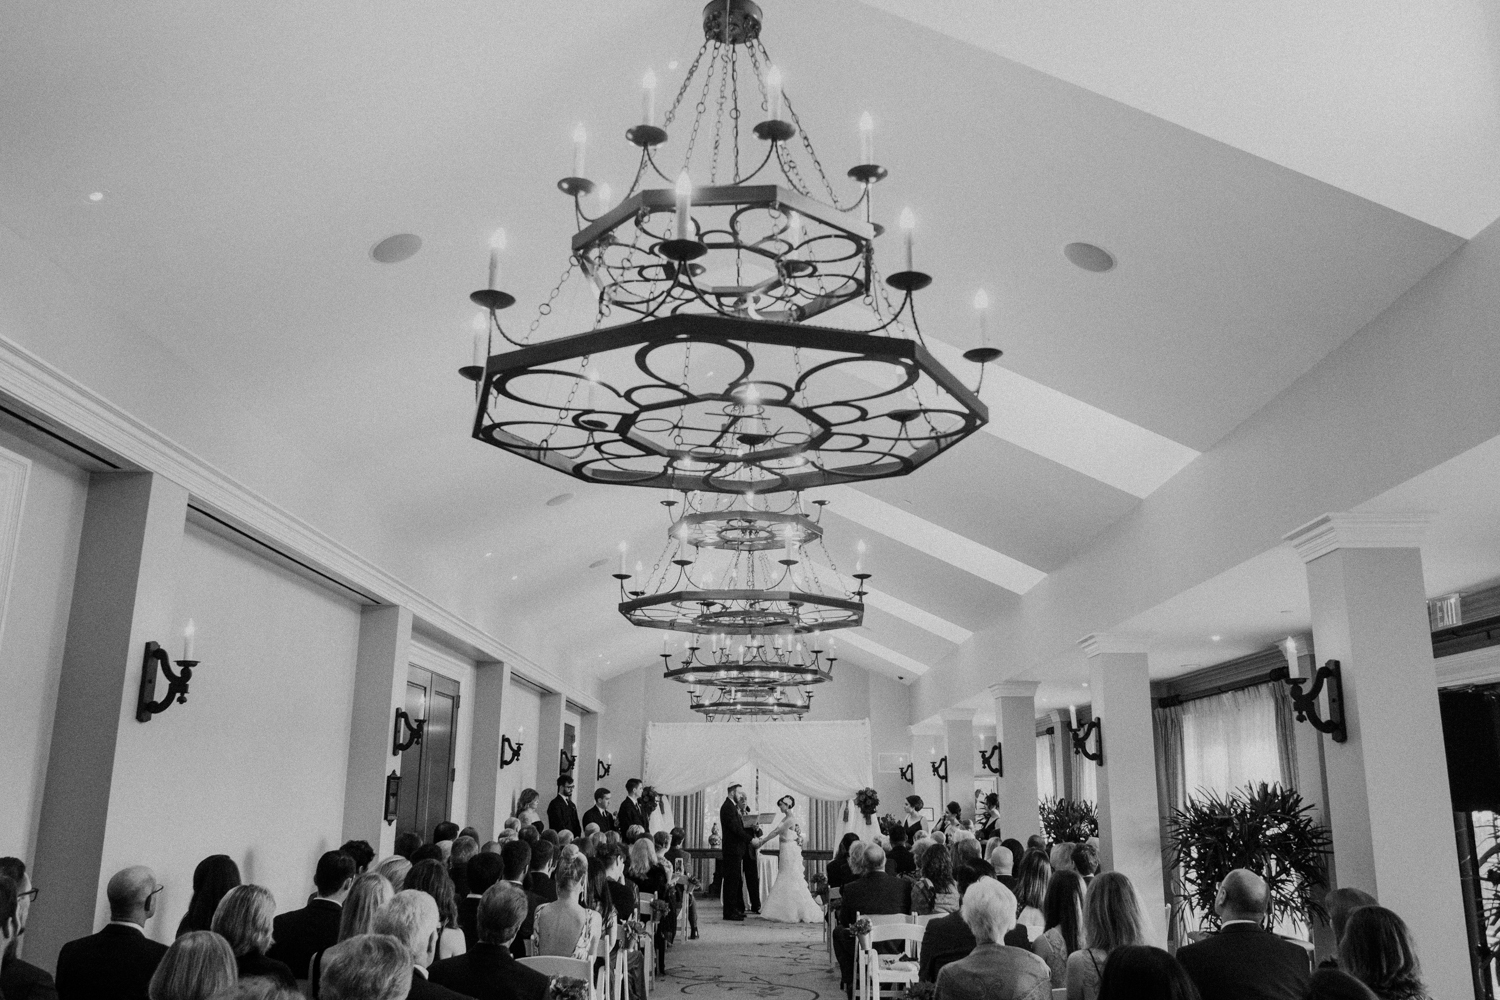 salamander resort and spa indoor wedding venue in loudoun county